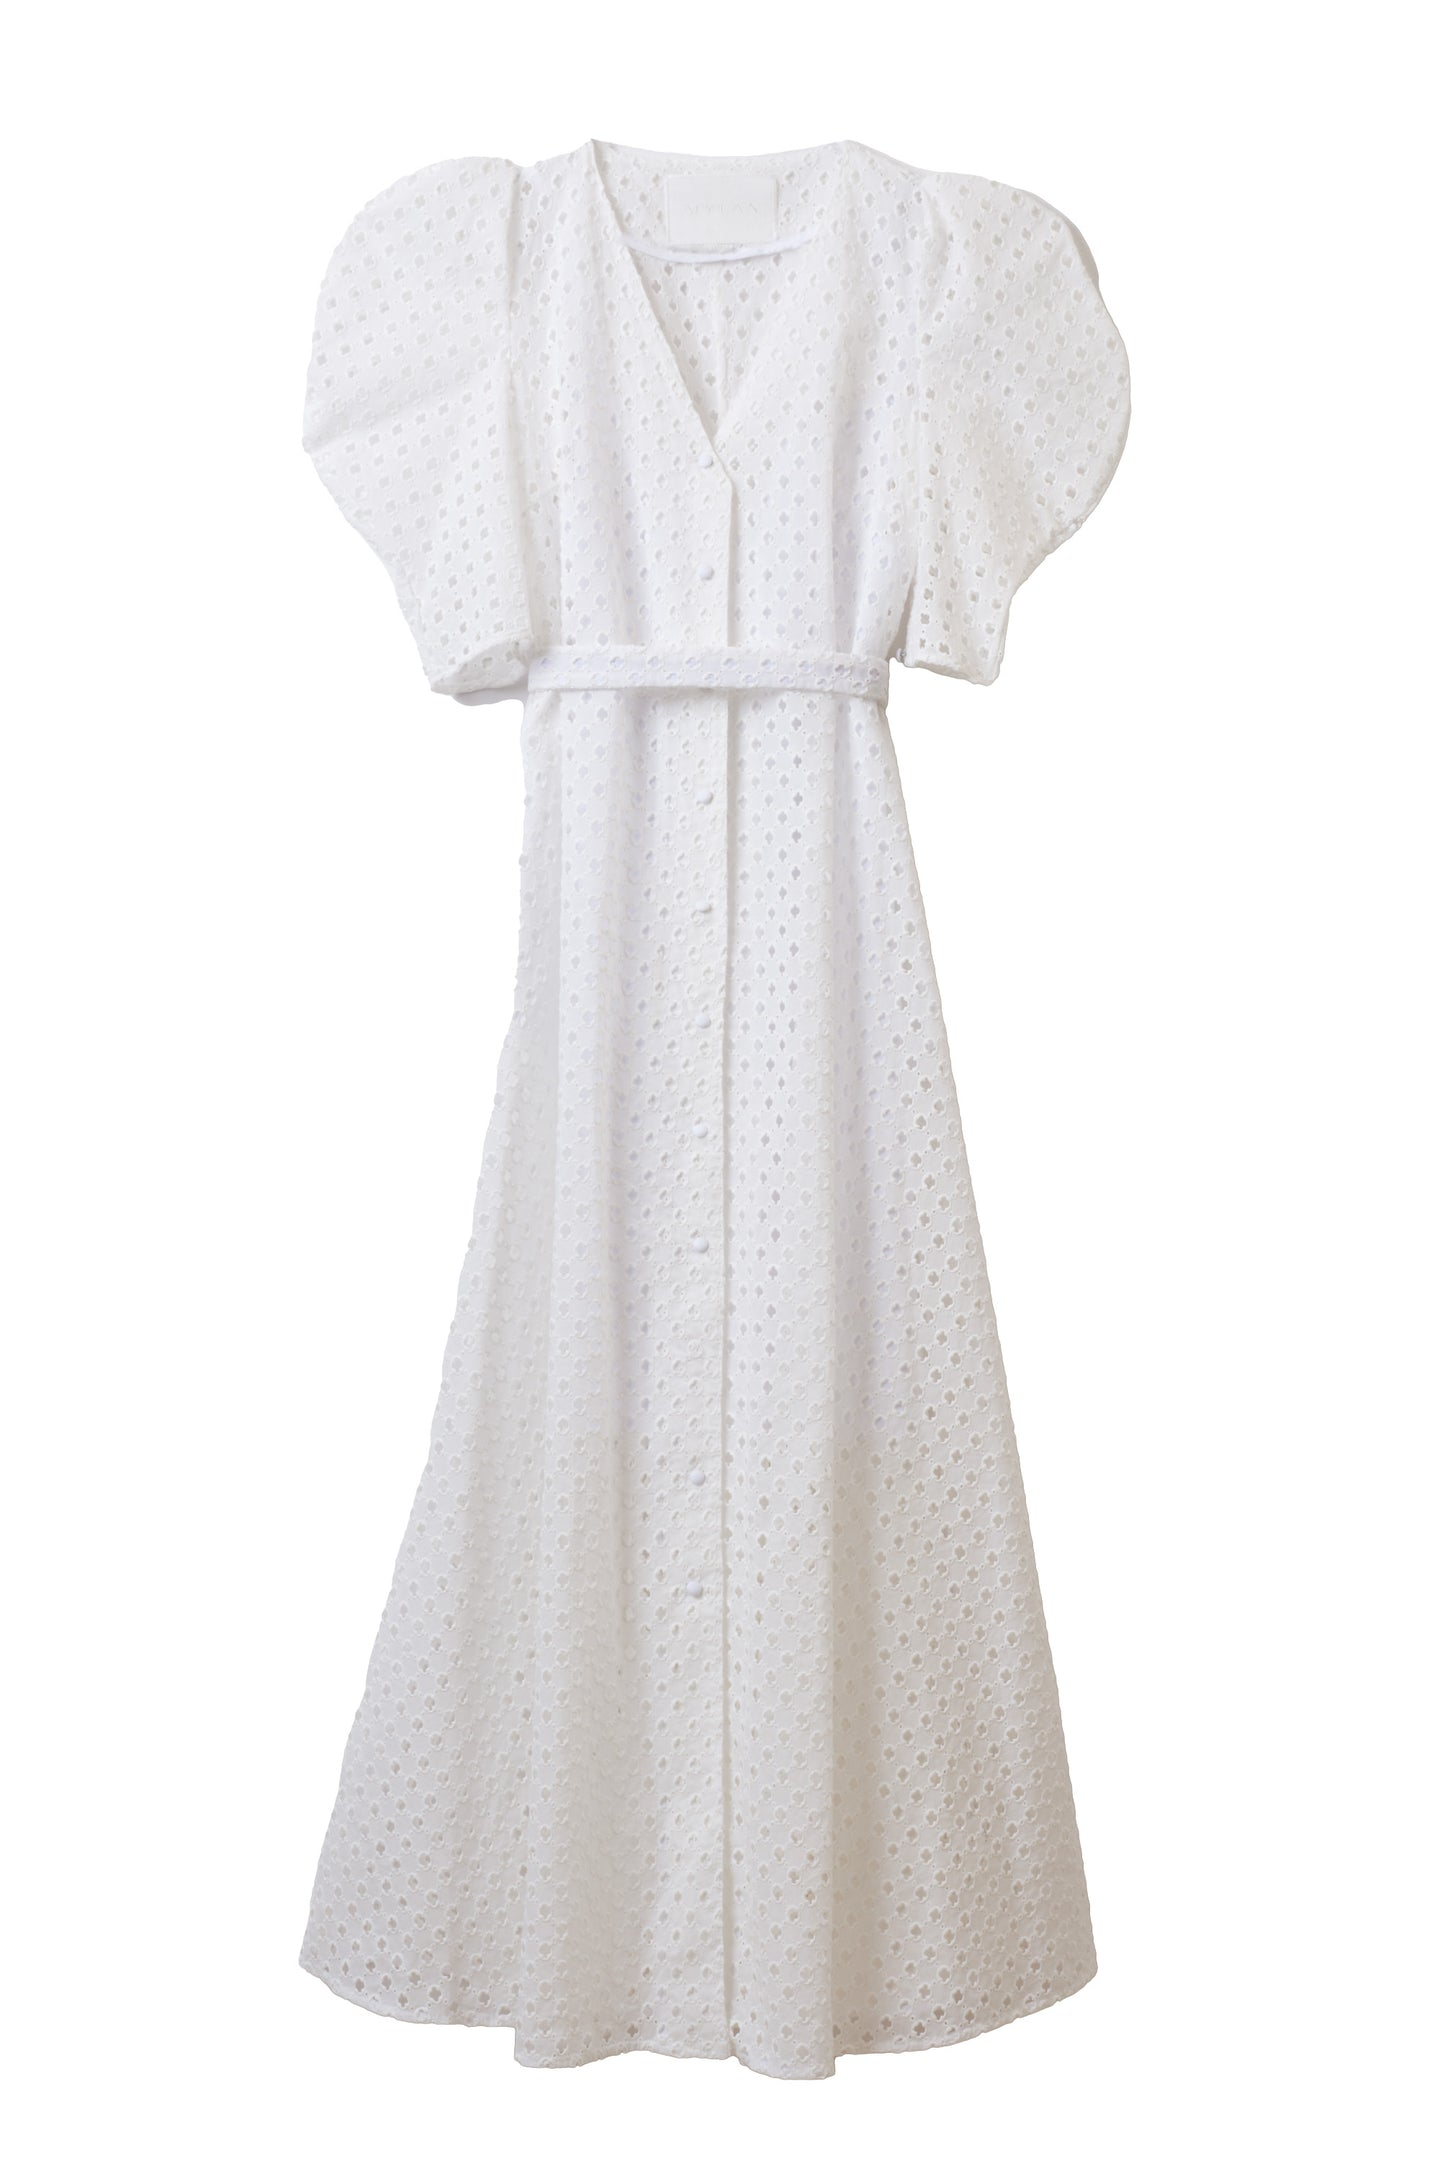 Cotton Lace Volume Sleeve Dress | Shell White